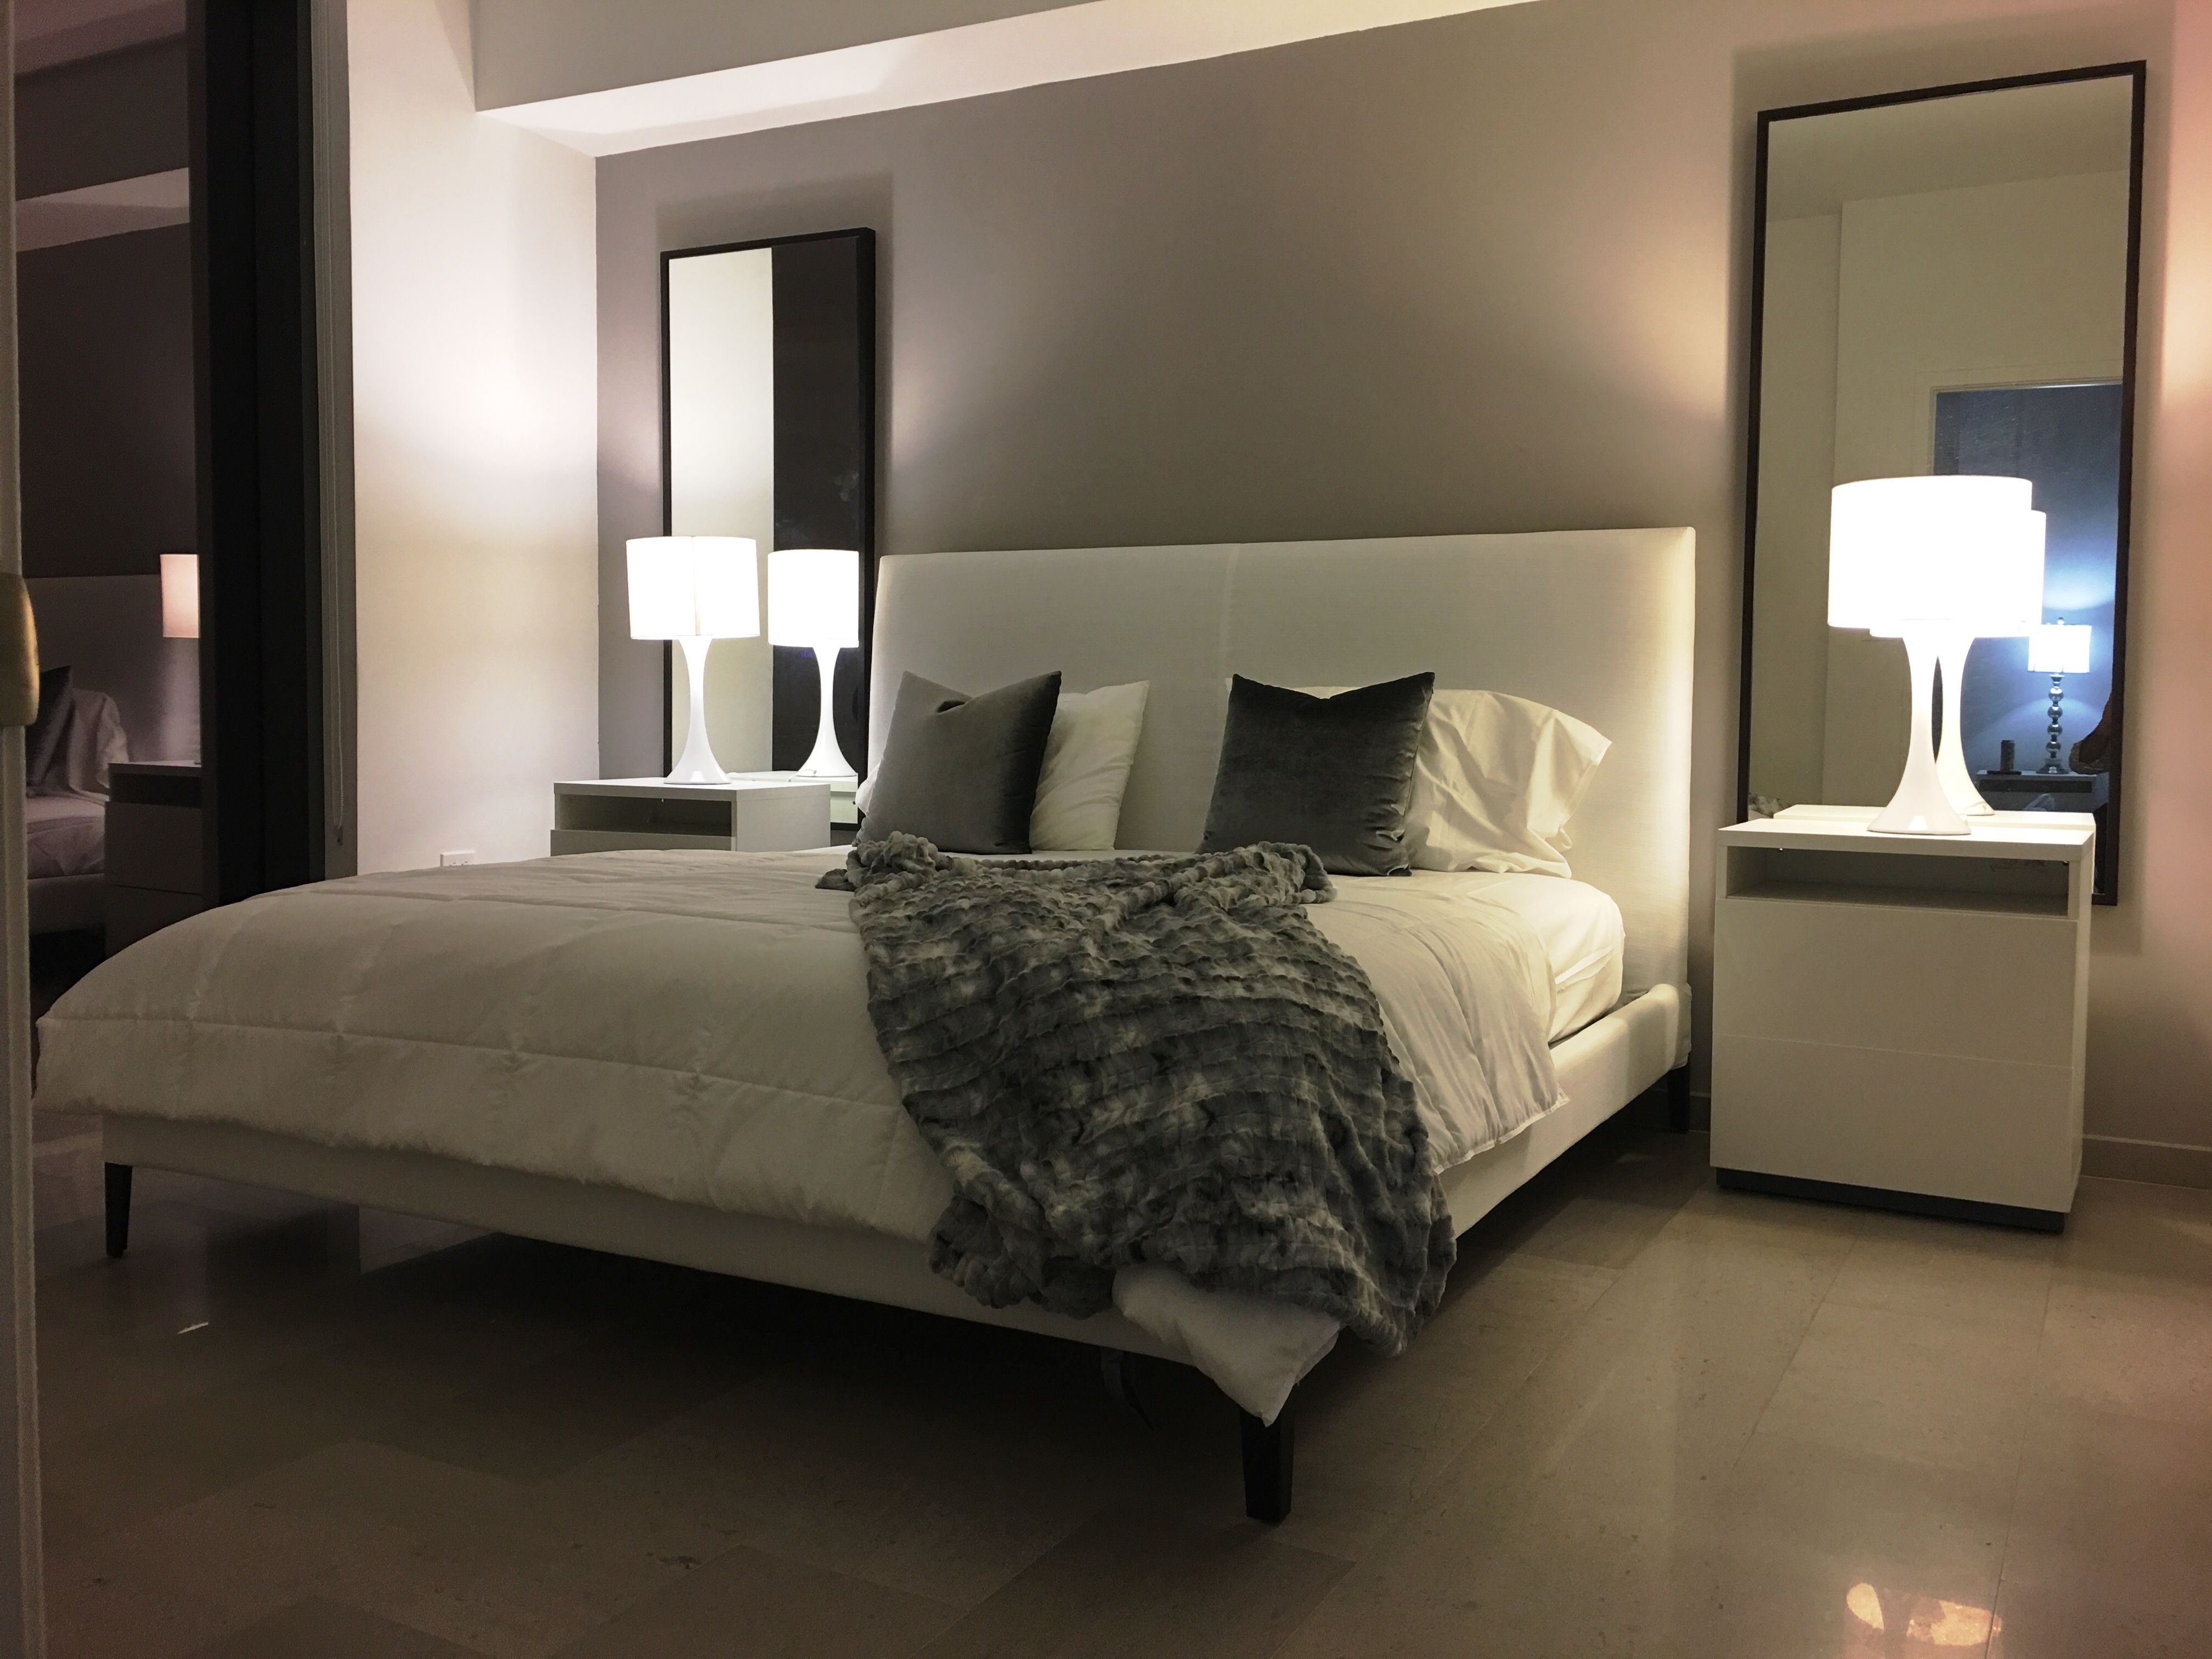 Our Designer Furniture Packages Include Full Accessorizing And